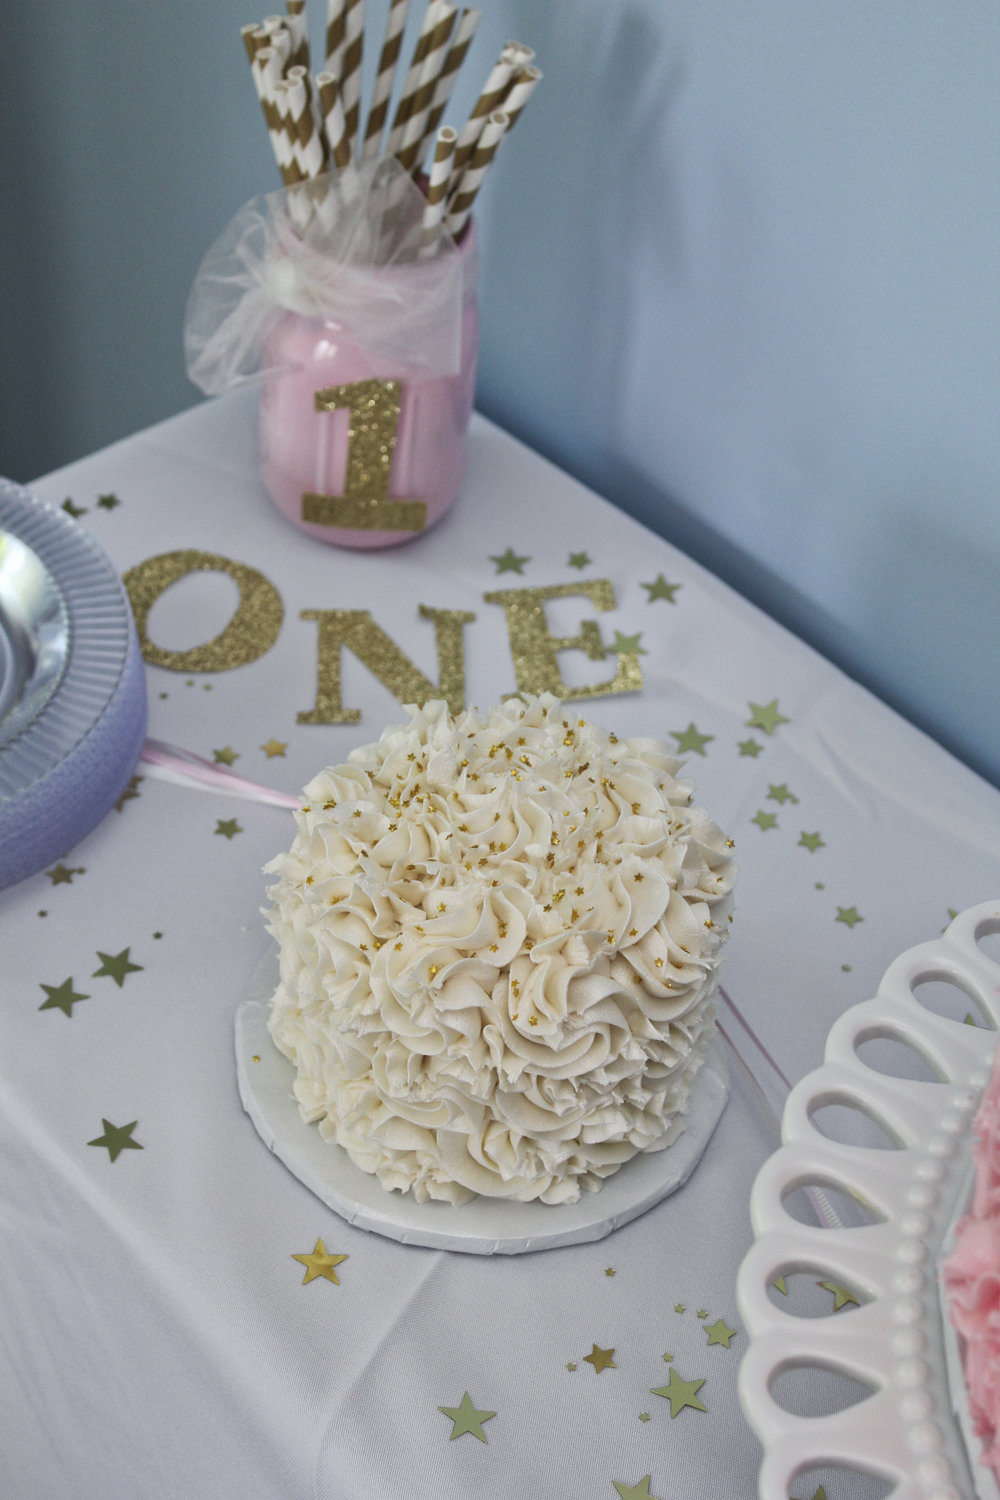 Rosette smash cake for a little girl's first birthday party. Edible gold star sprinkles are the perfect finishing touch!